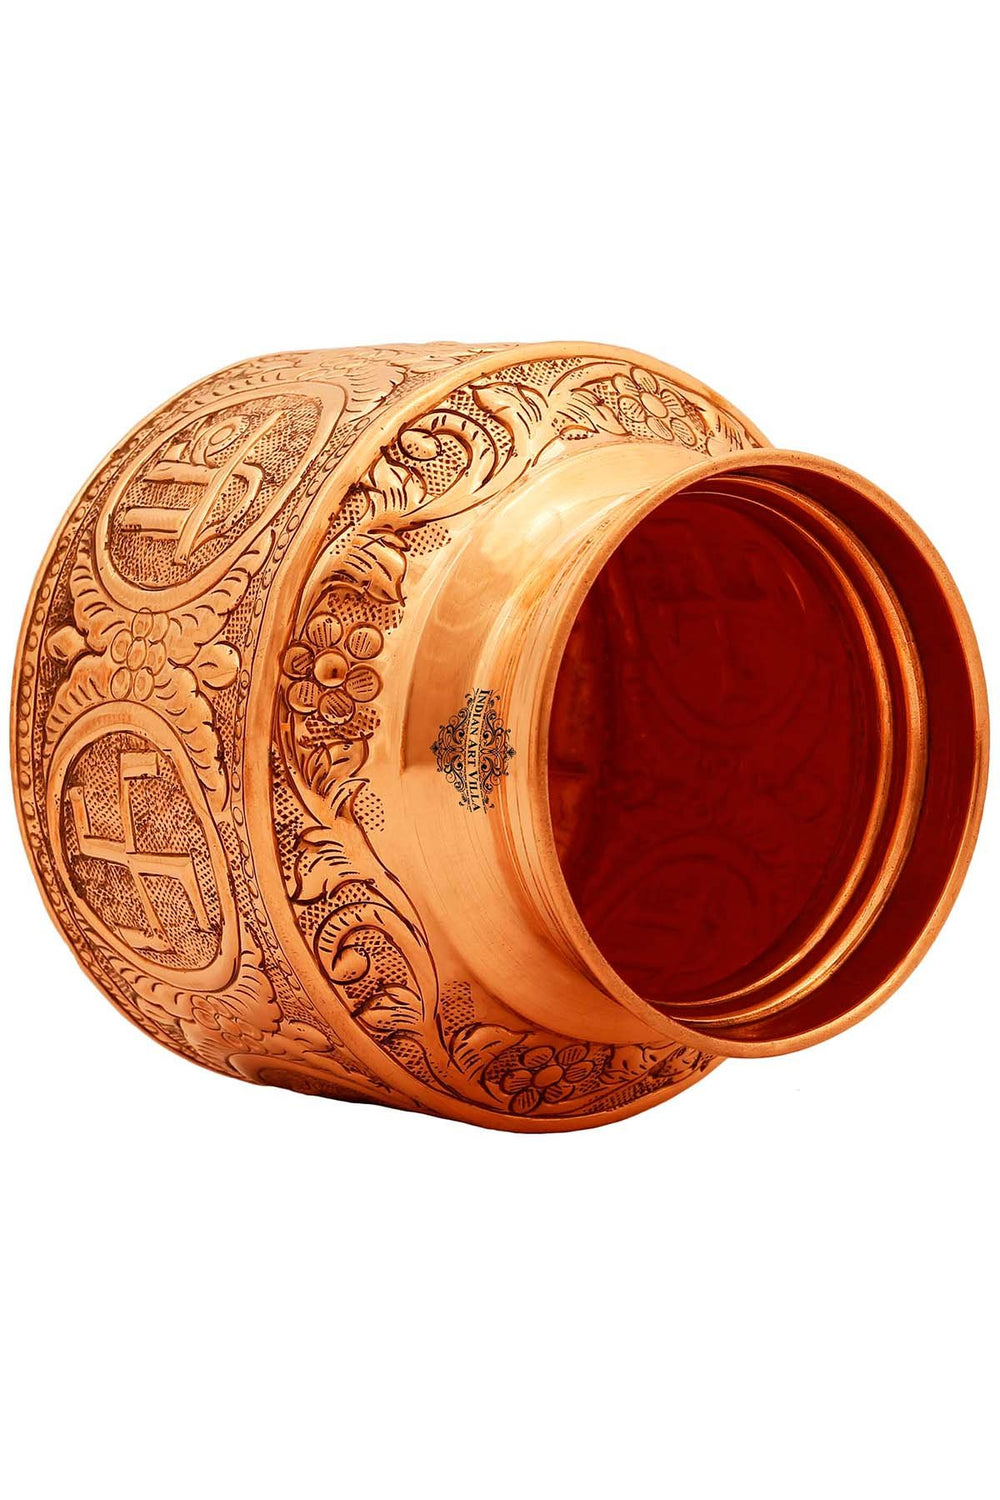 Copper Om Swastik Design Lota Kalash Pot